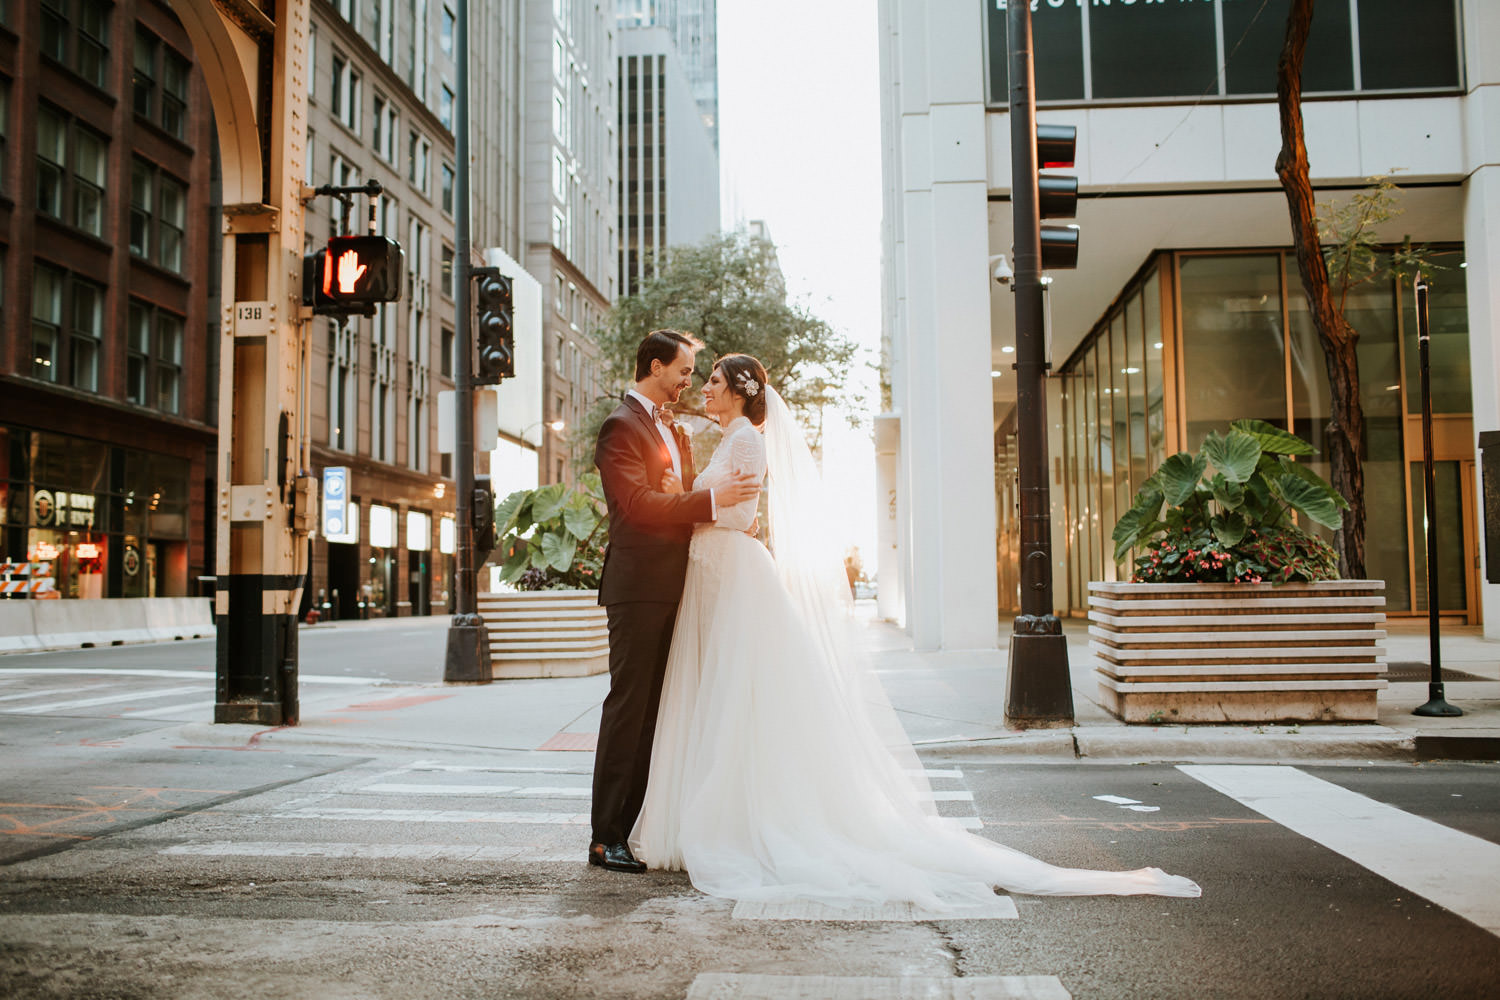 Sunset portrait of the bride and groom taken by hotel gray in Chicago